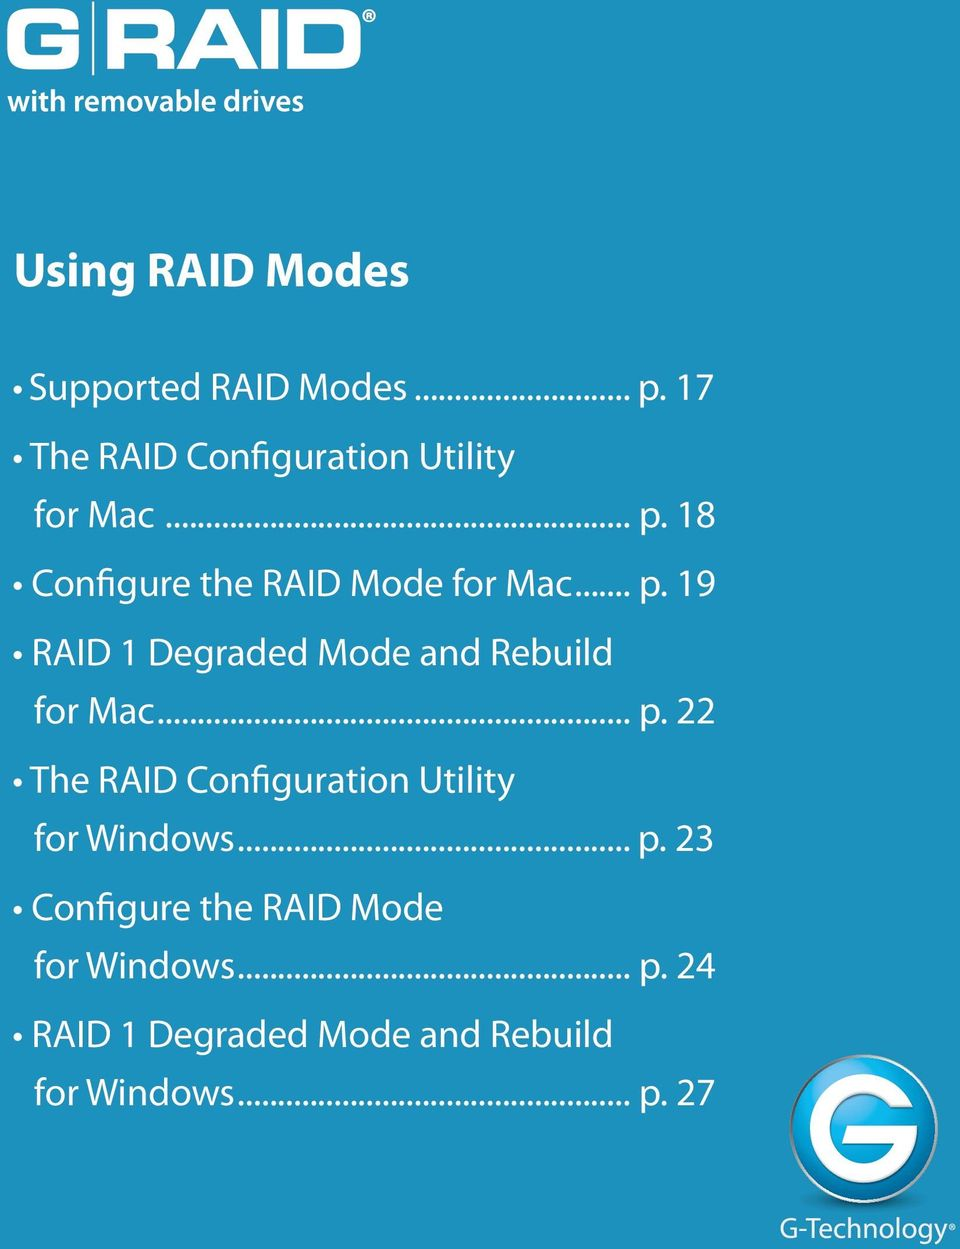 .. p. 19 RAID 1 Degraded Mode and Rebuild for Mac... p. 22 The RAID Configuration Utility for Windows.